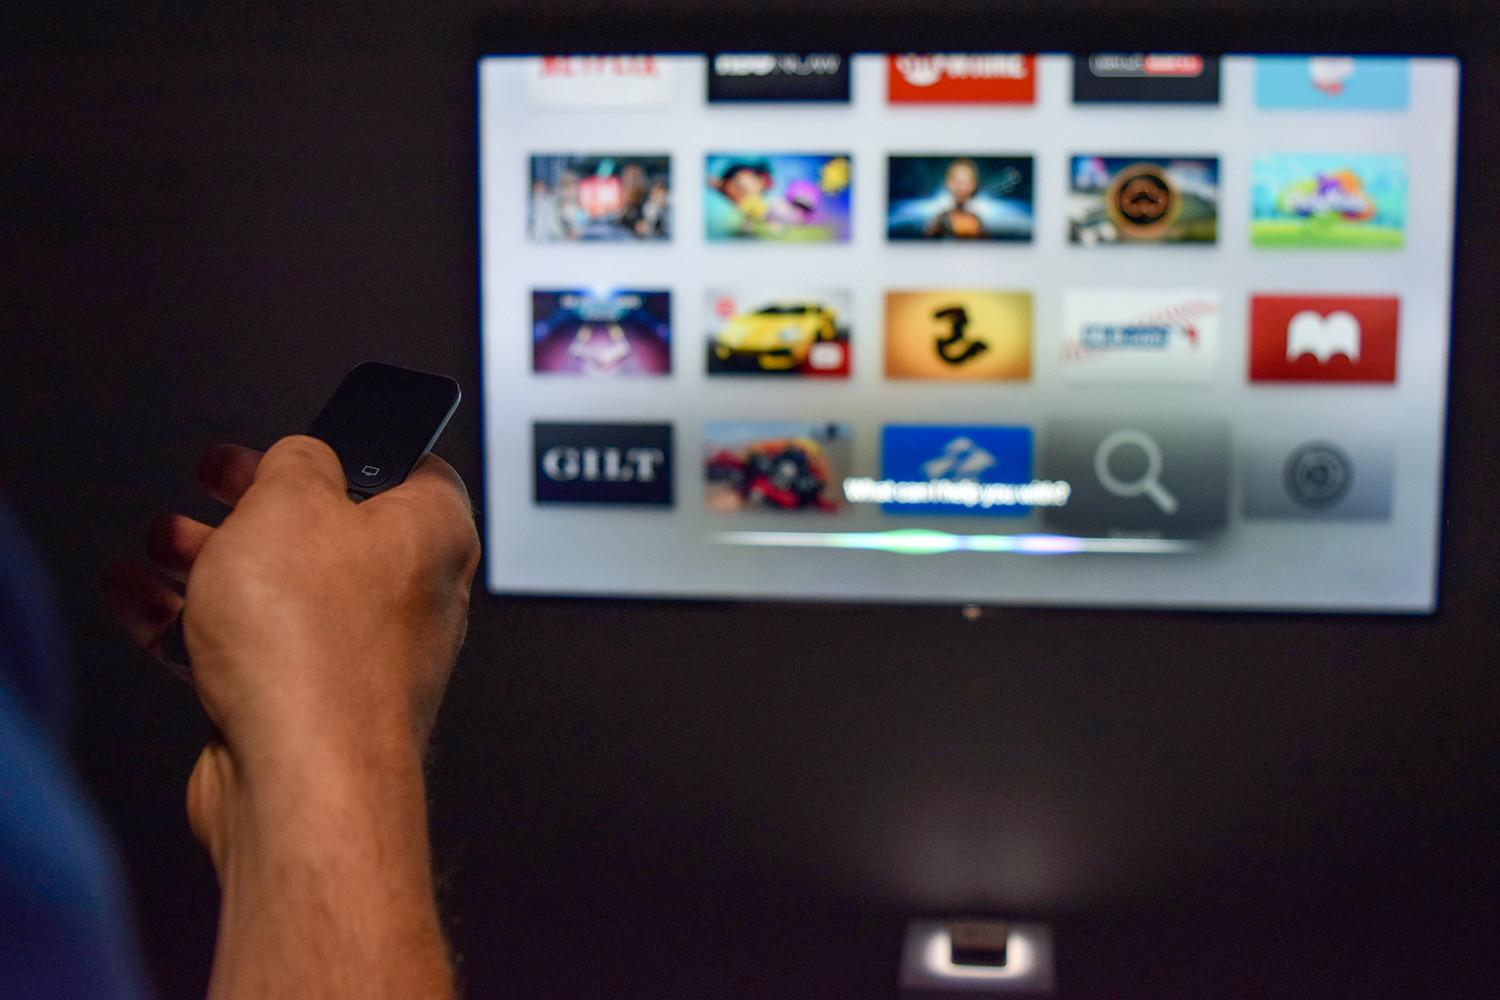 Apple is reportedly launching an app that will recommend shows on Apple TV